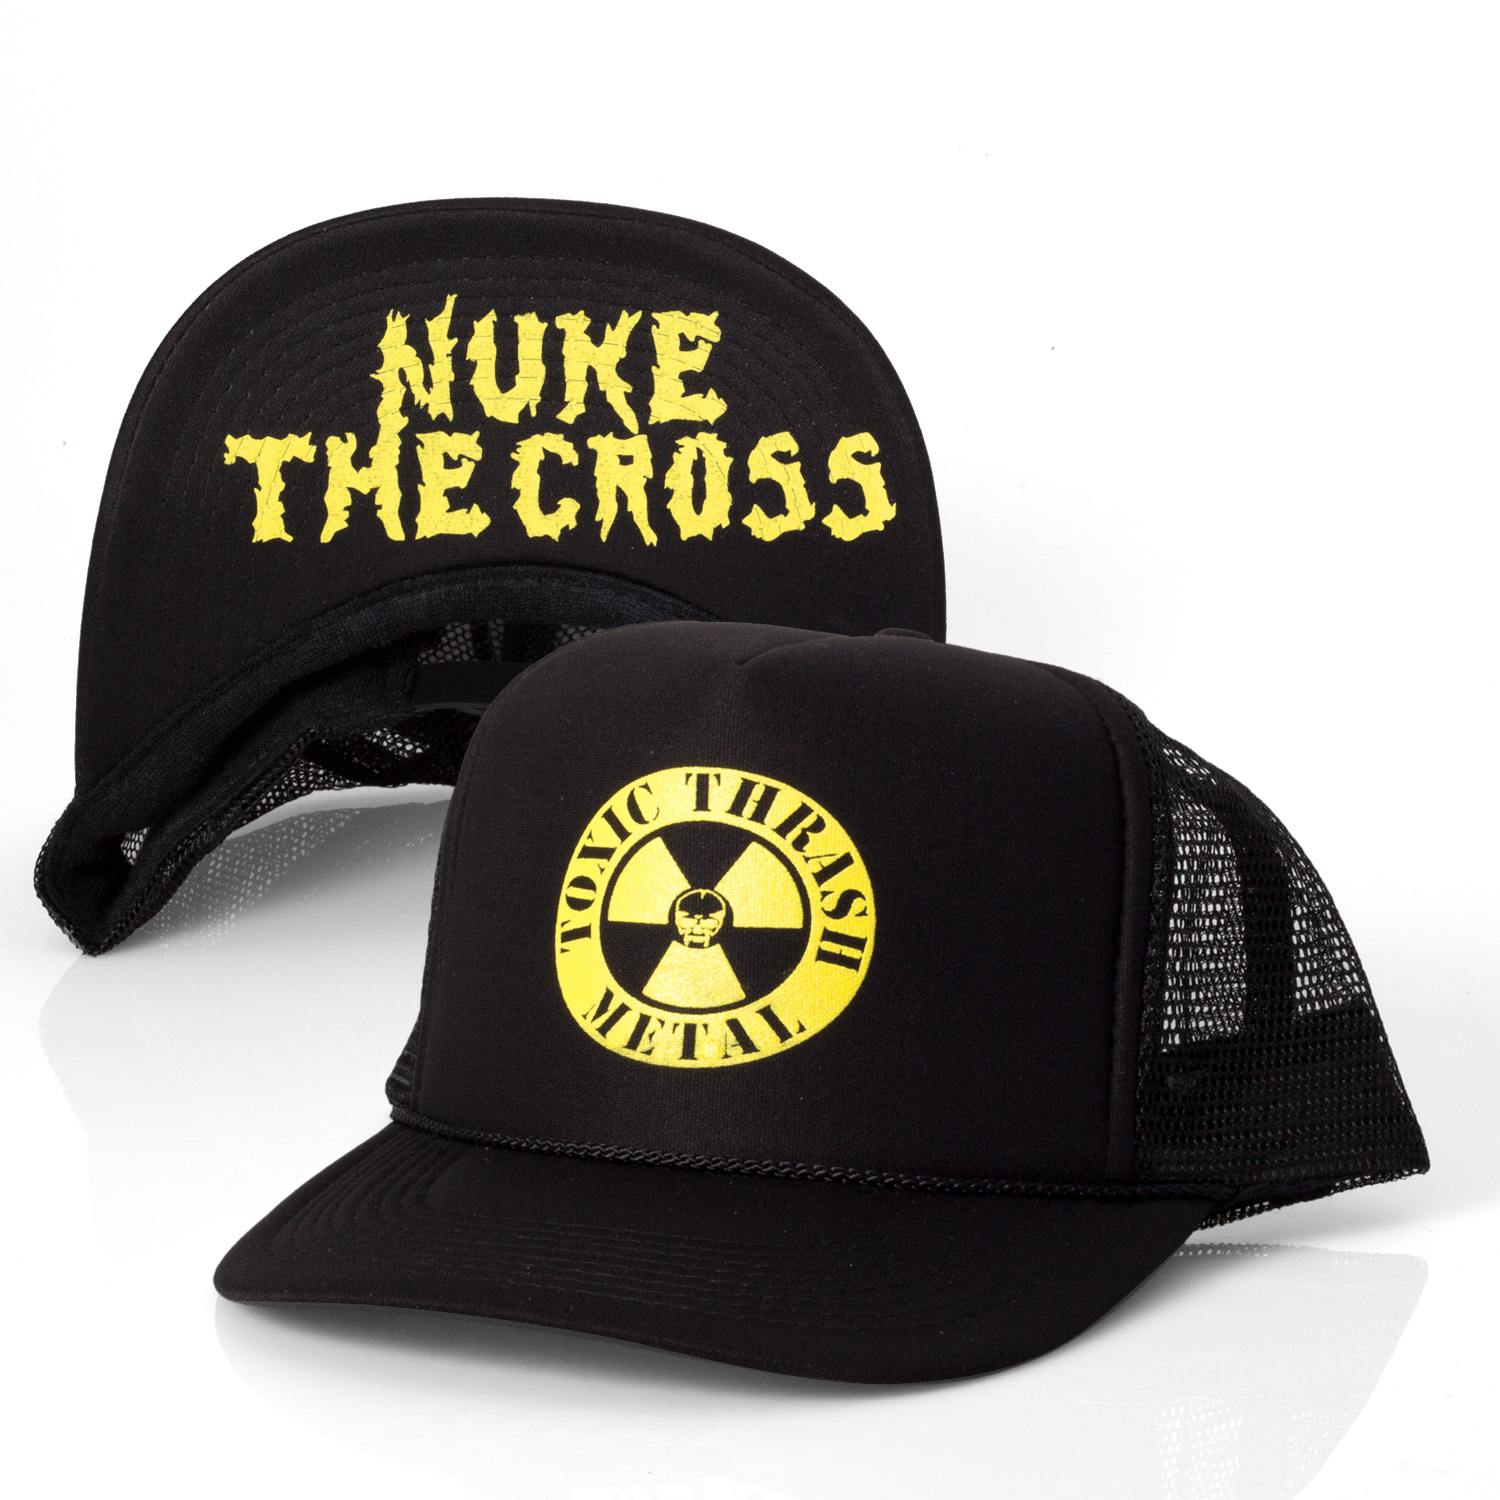 Nuke the Cross